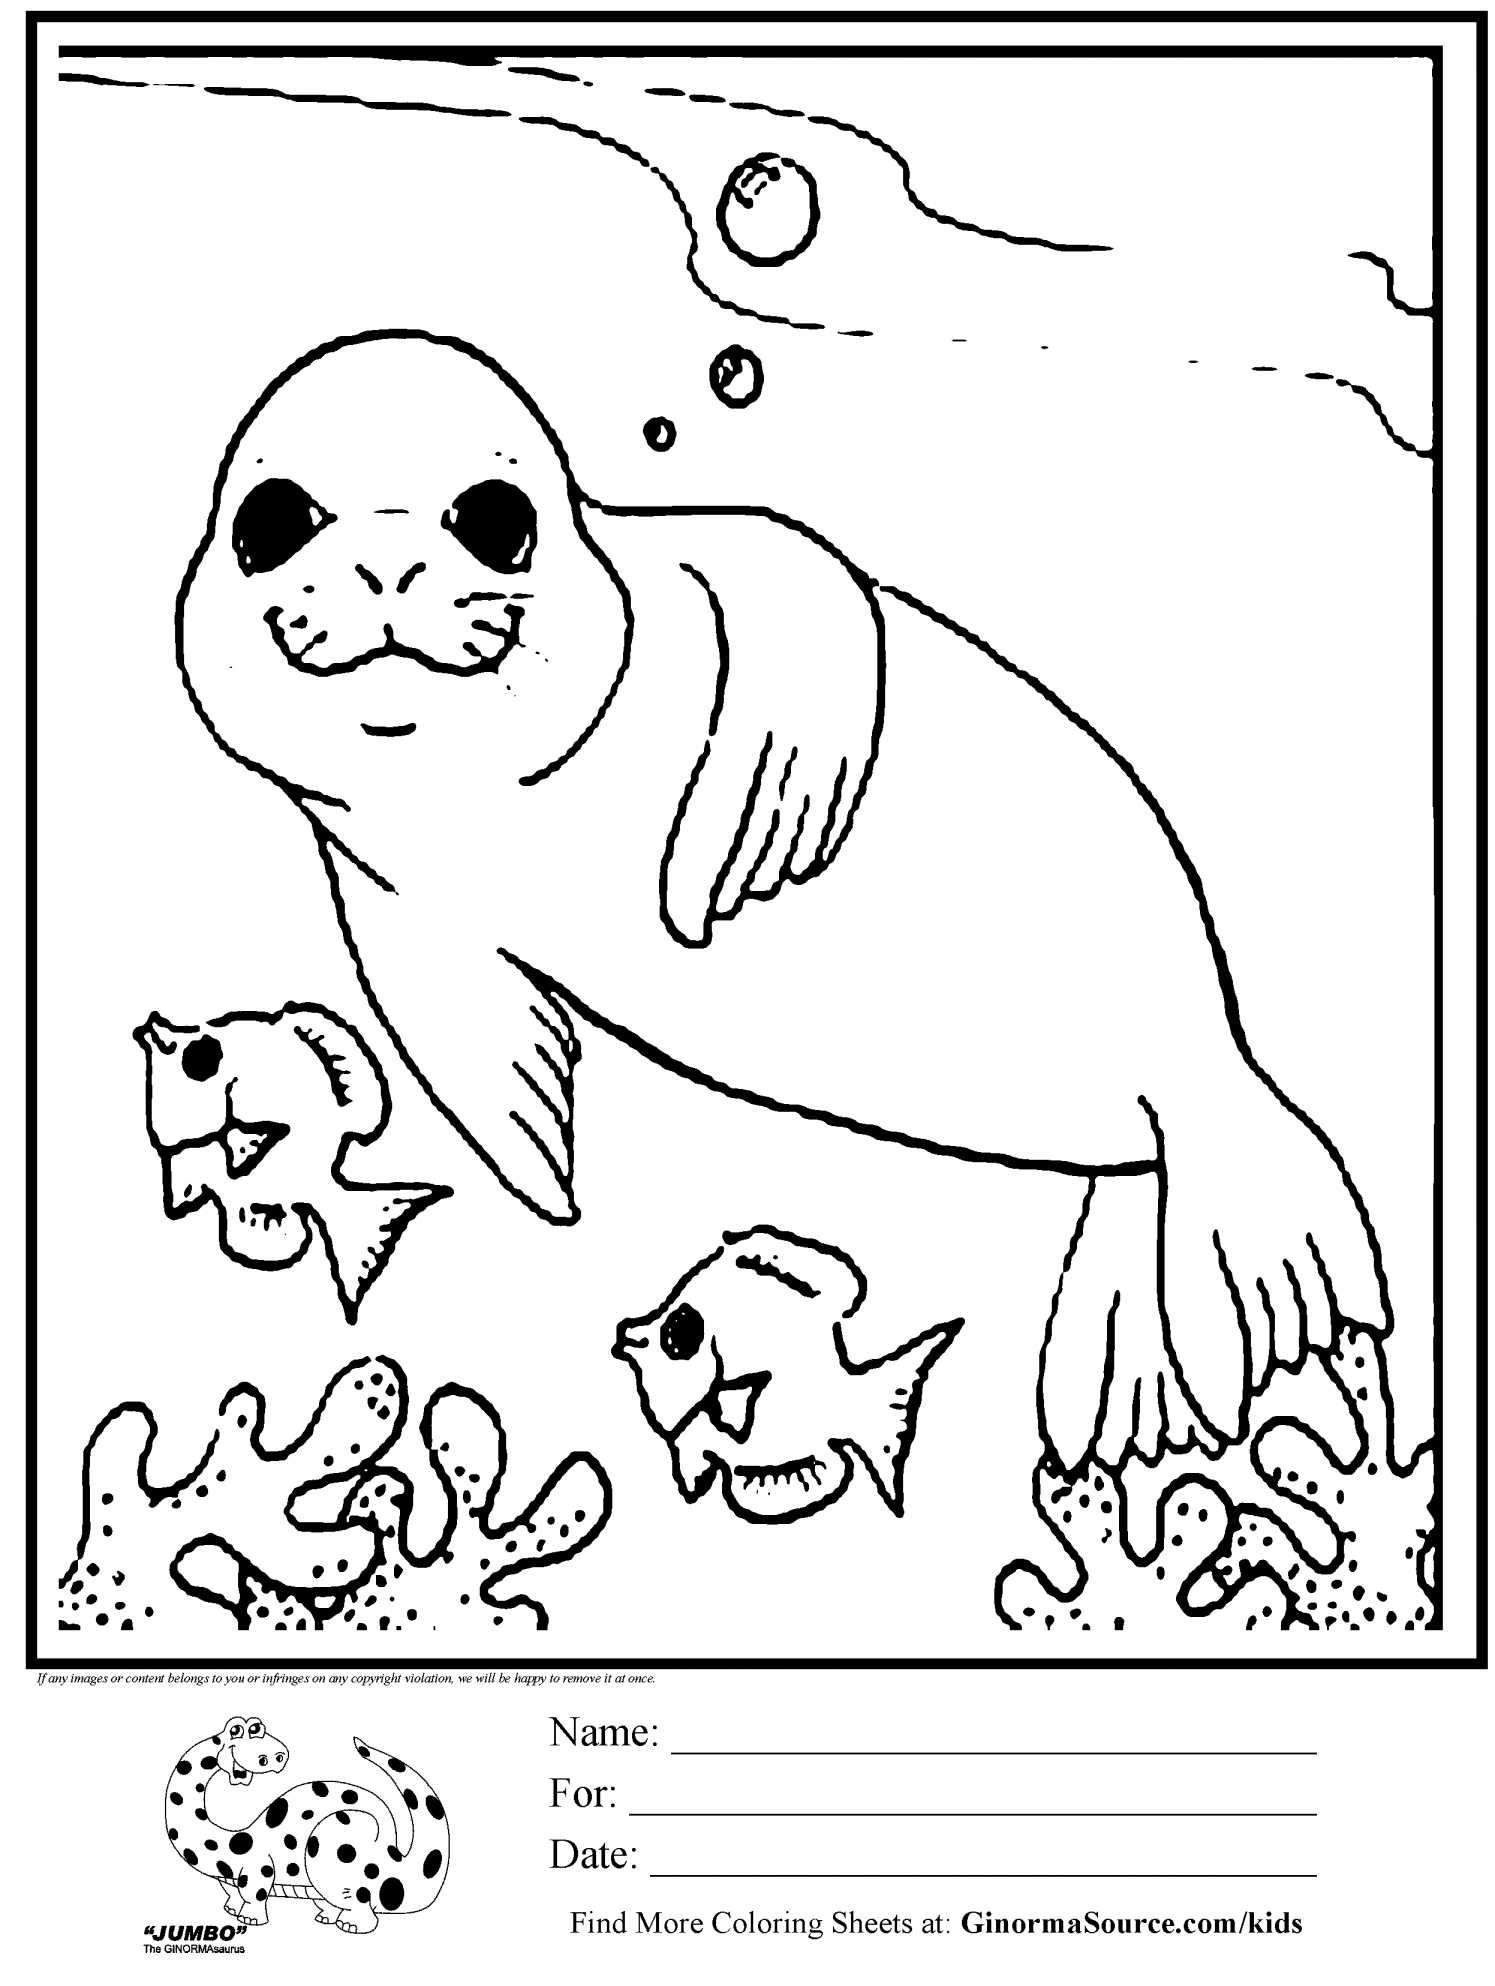 Precious Moments Baby Coloring Pages Coloring Ideas Missouri State Animal Coloring Pages New Unique